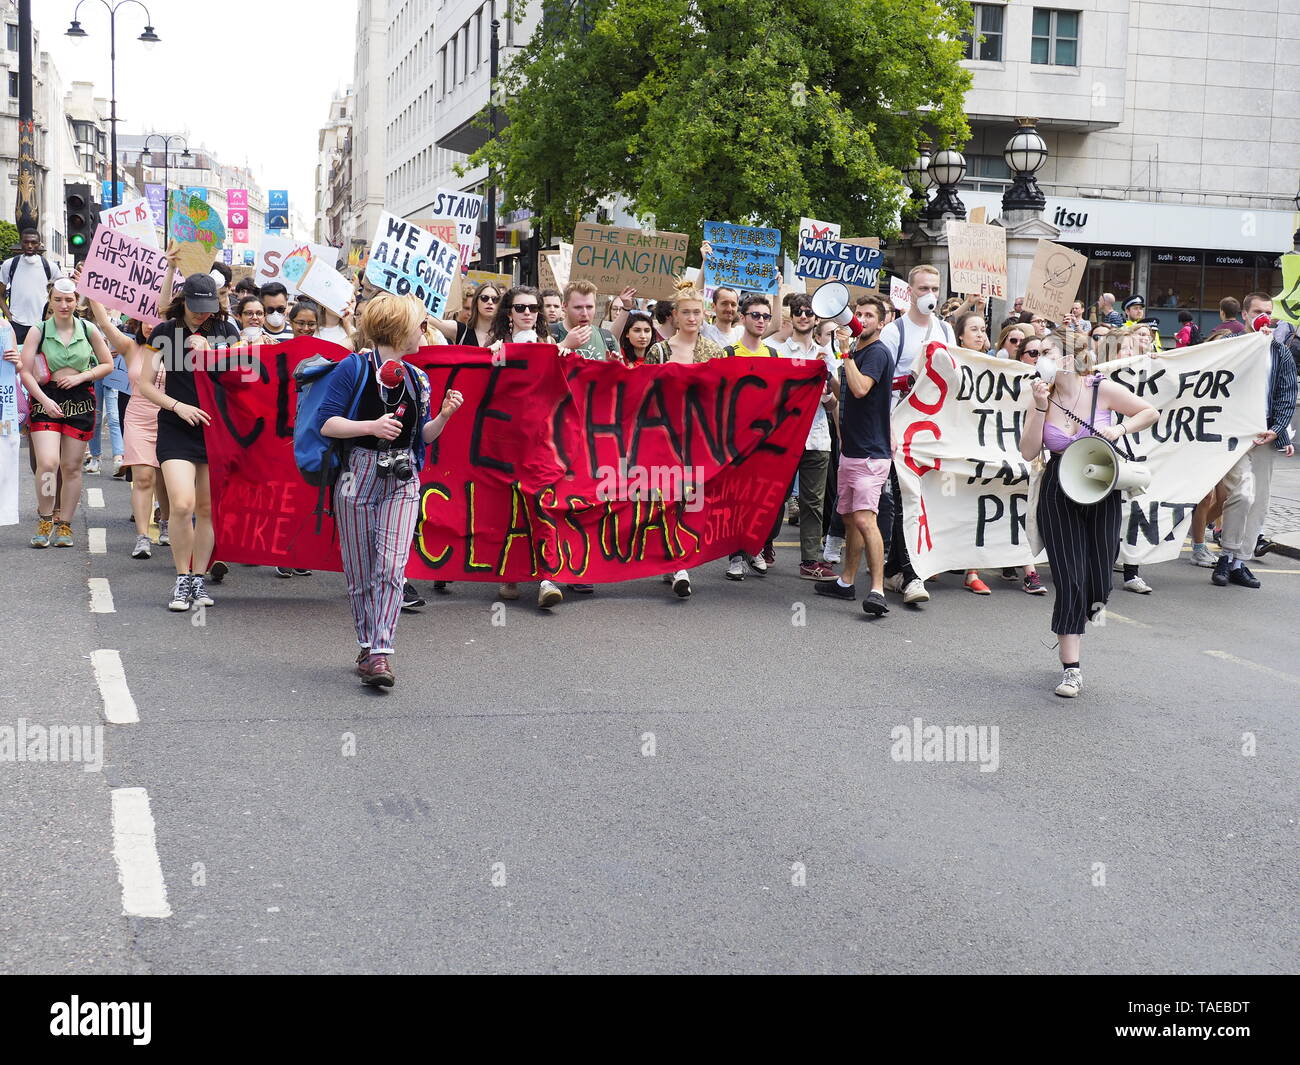 London, UK. 24th May, 2019. Students from Kings College London march for action on climate change along the Strand to meet up with the main protest event. Credit: Alan Gallery. - Stock Image